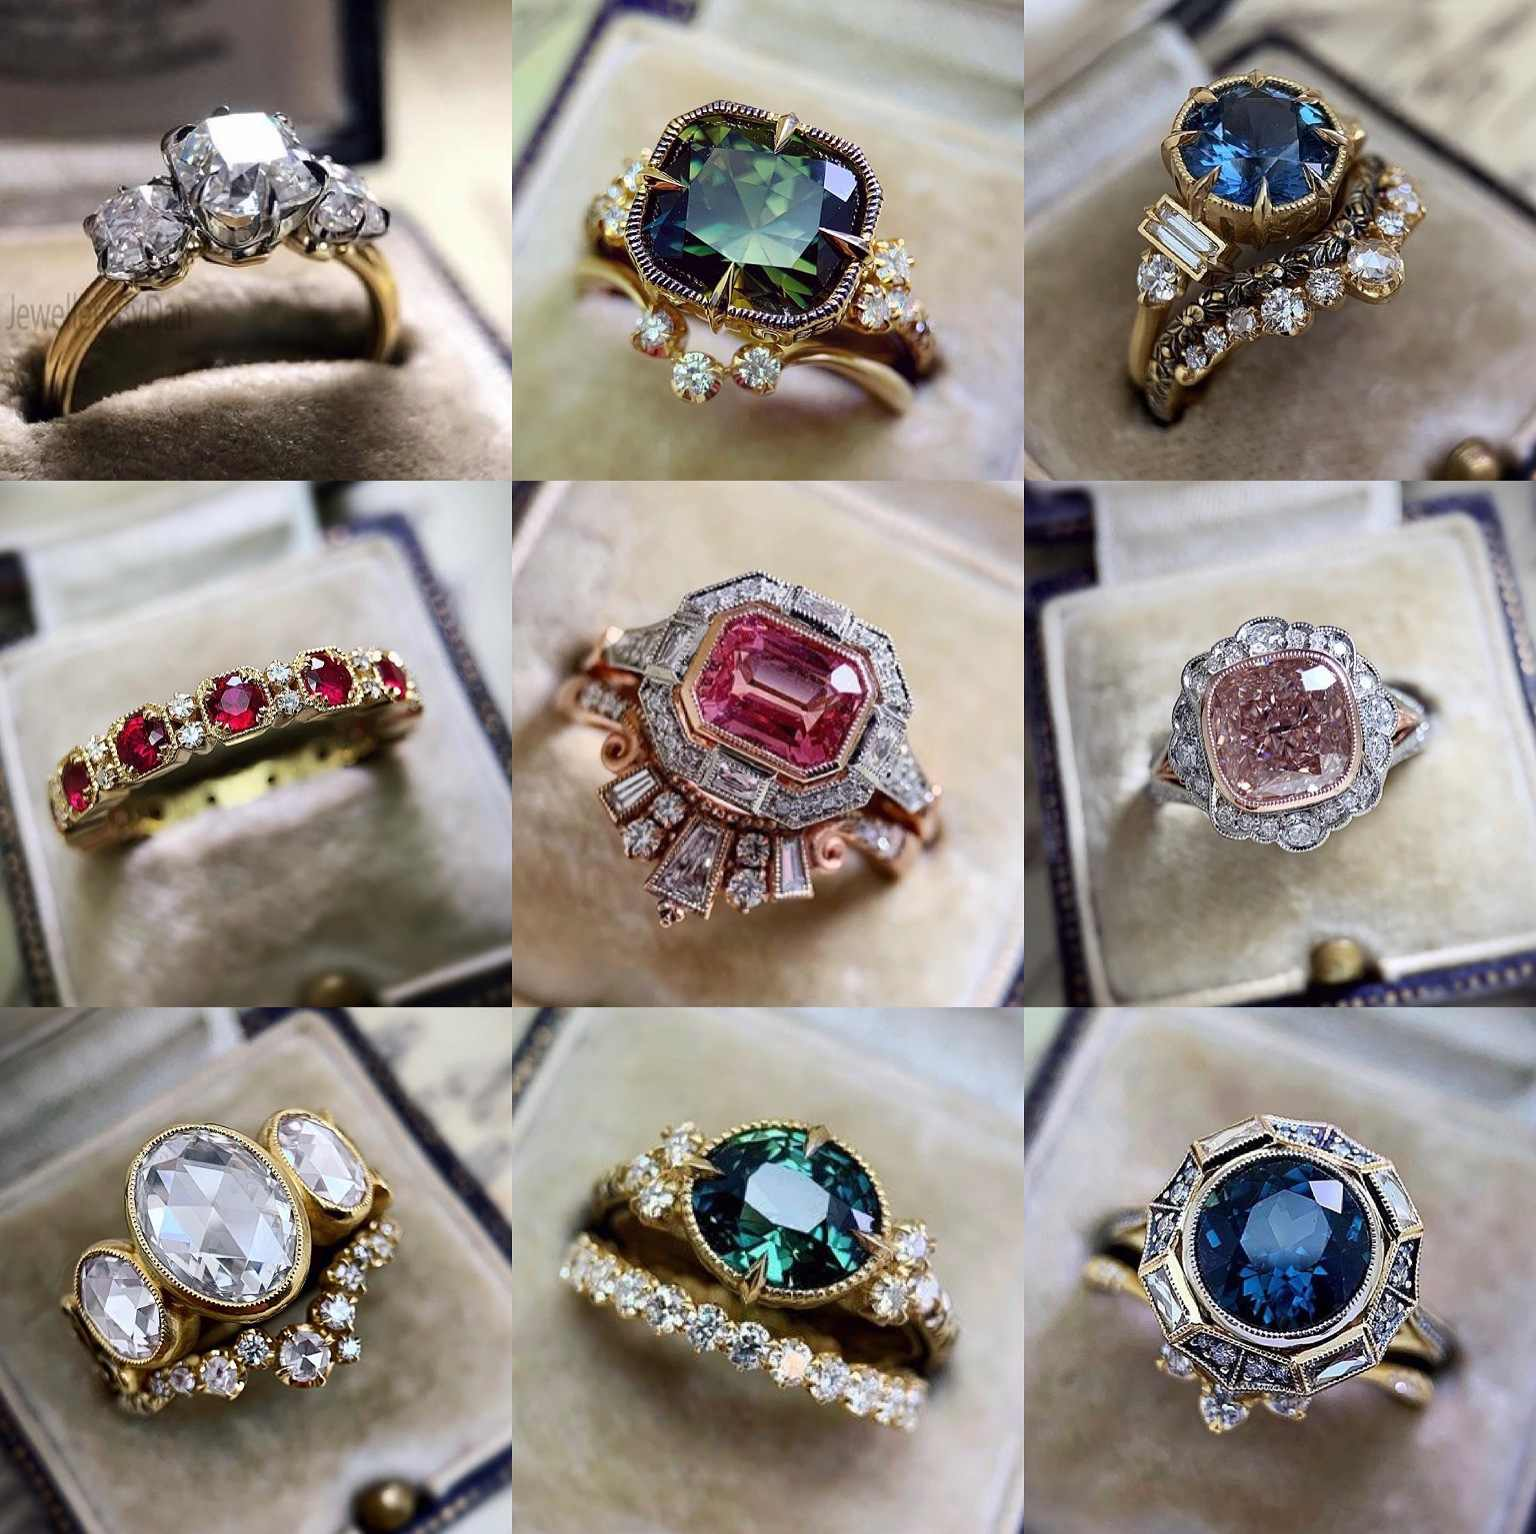 New Style Inlaid Colorful AAAA Zircon Ring Set Ring Retro Elegant Ladies Jewelry Ring Wedding Party Jewelry Jewelry for Women